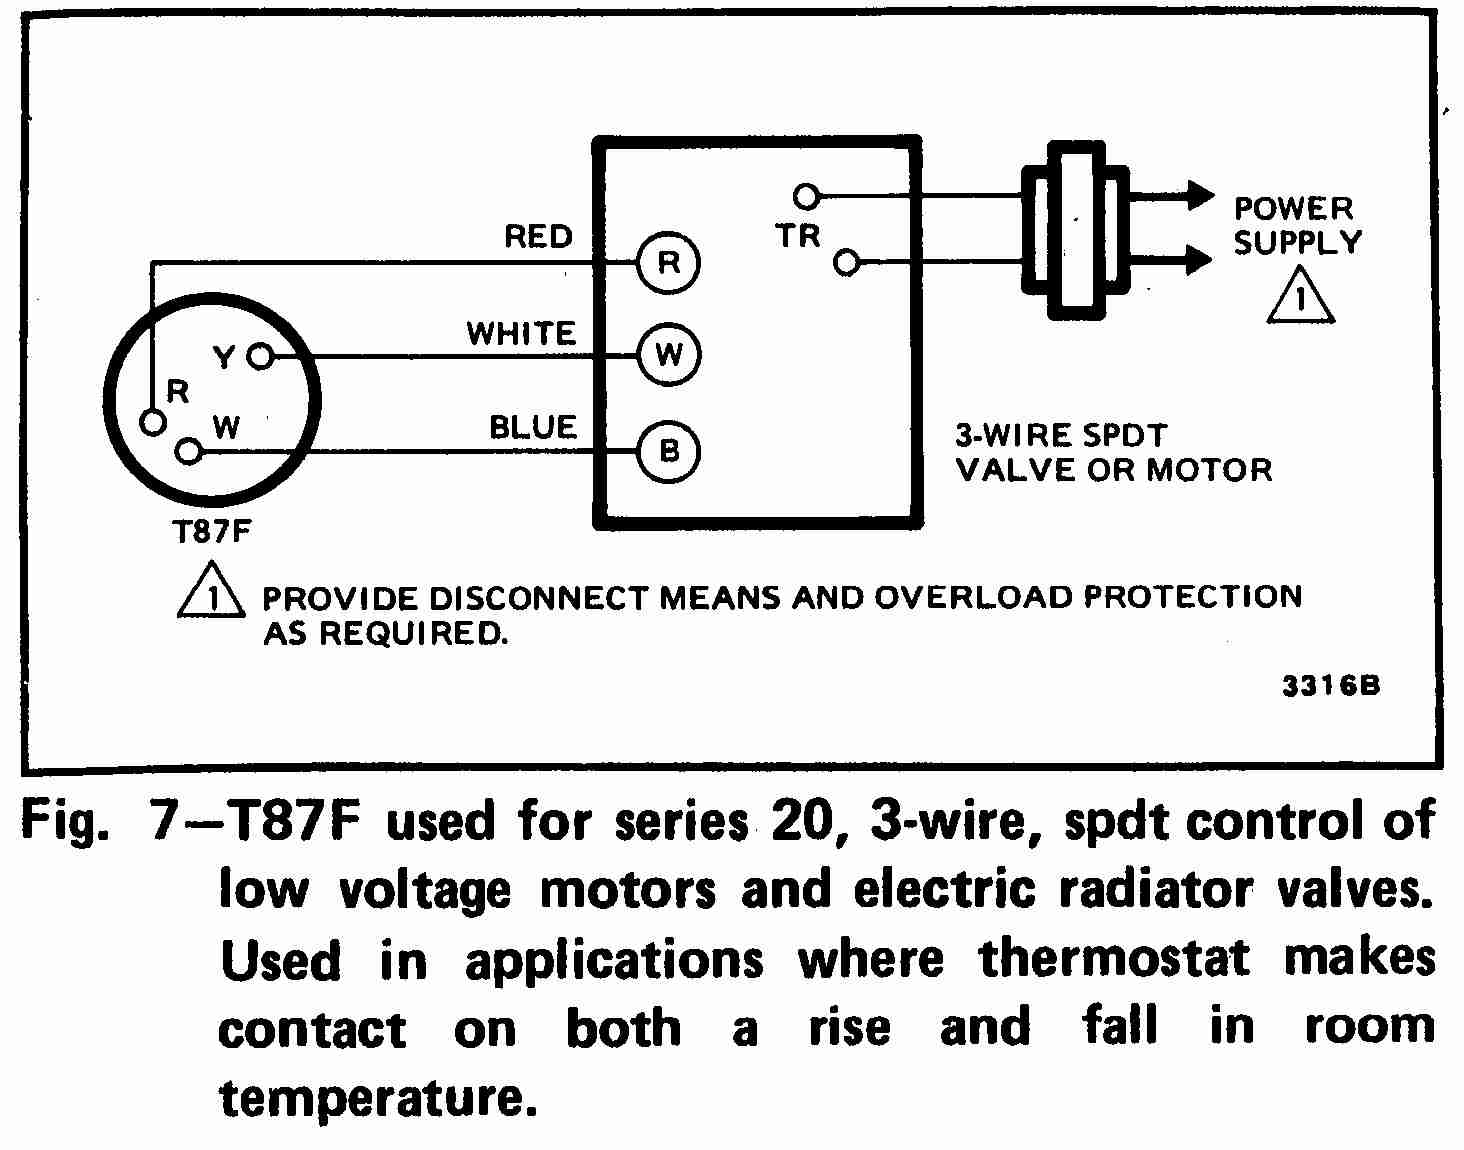 TT_T87F_0002_3W2_DJF room thermostat wiring diagrams for hvac systems thermostat wiring diagram at mifinder.co